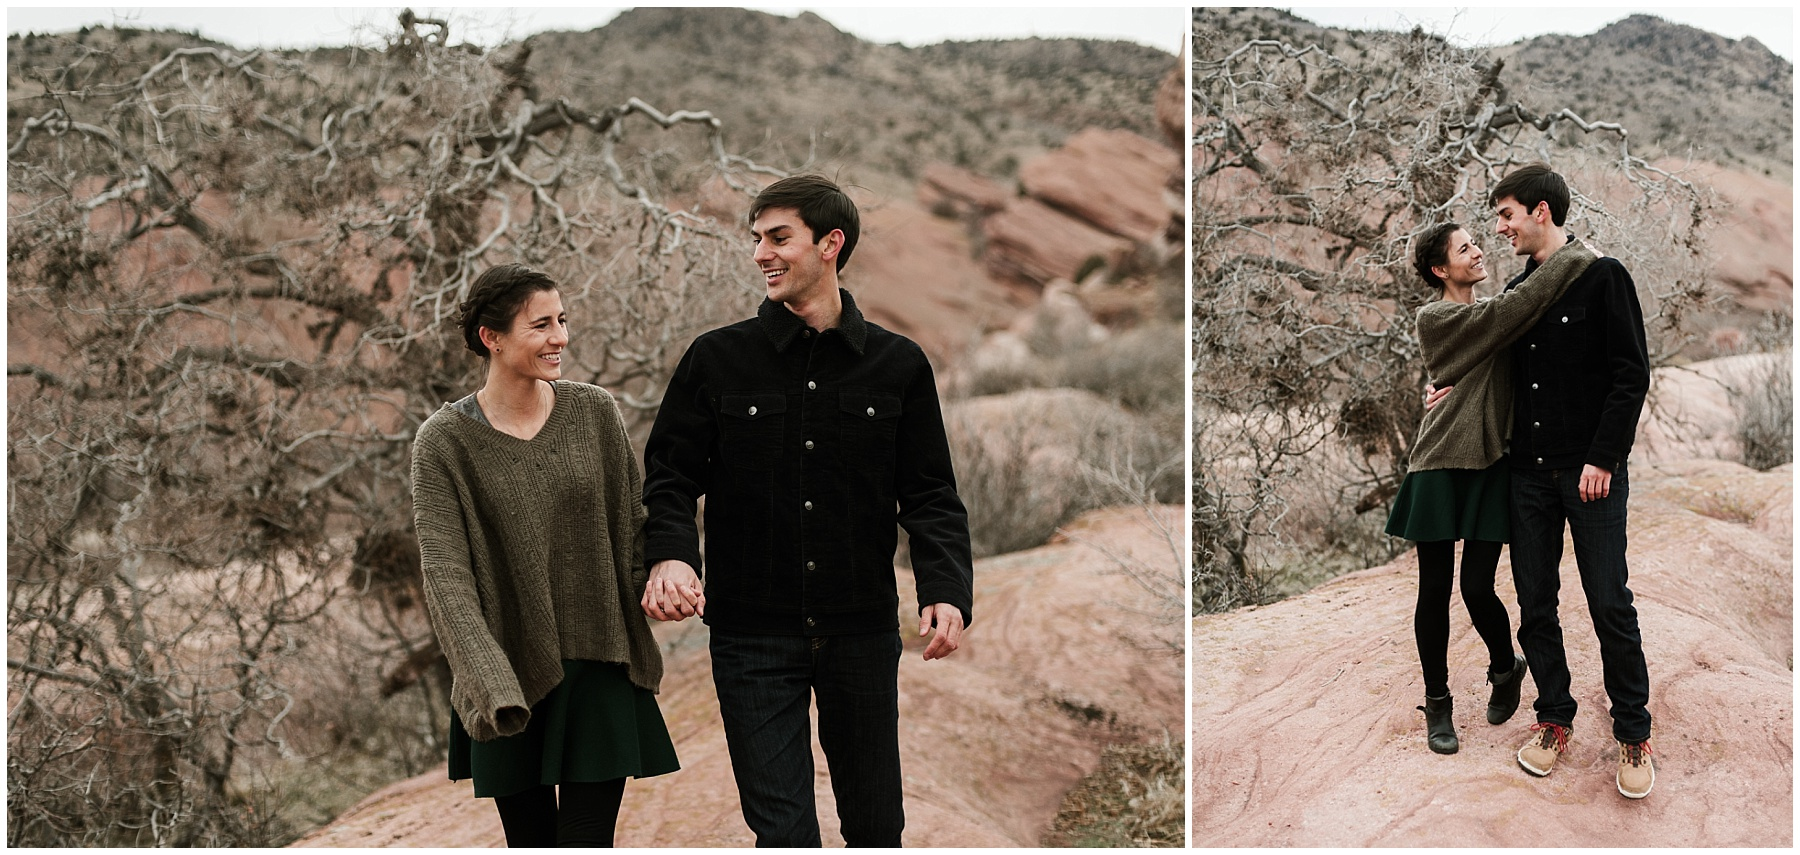 Katesalleyphotography-44_engagement shoot at Red Rocks.jpg